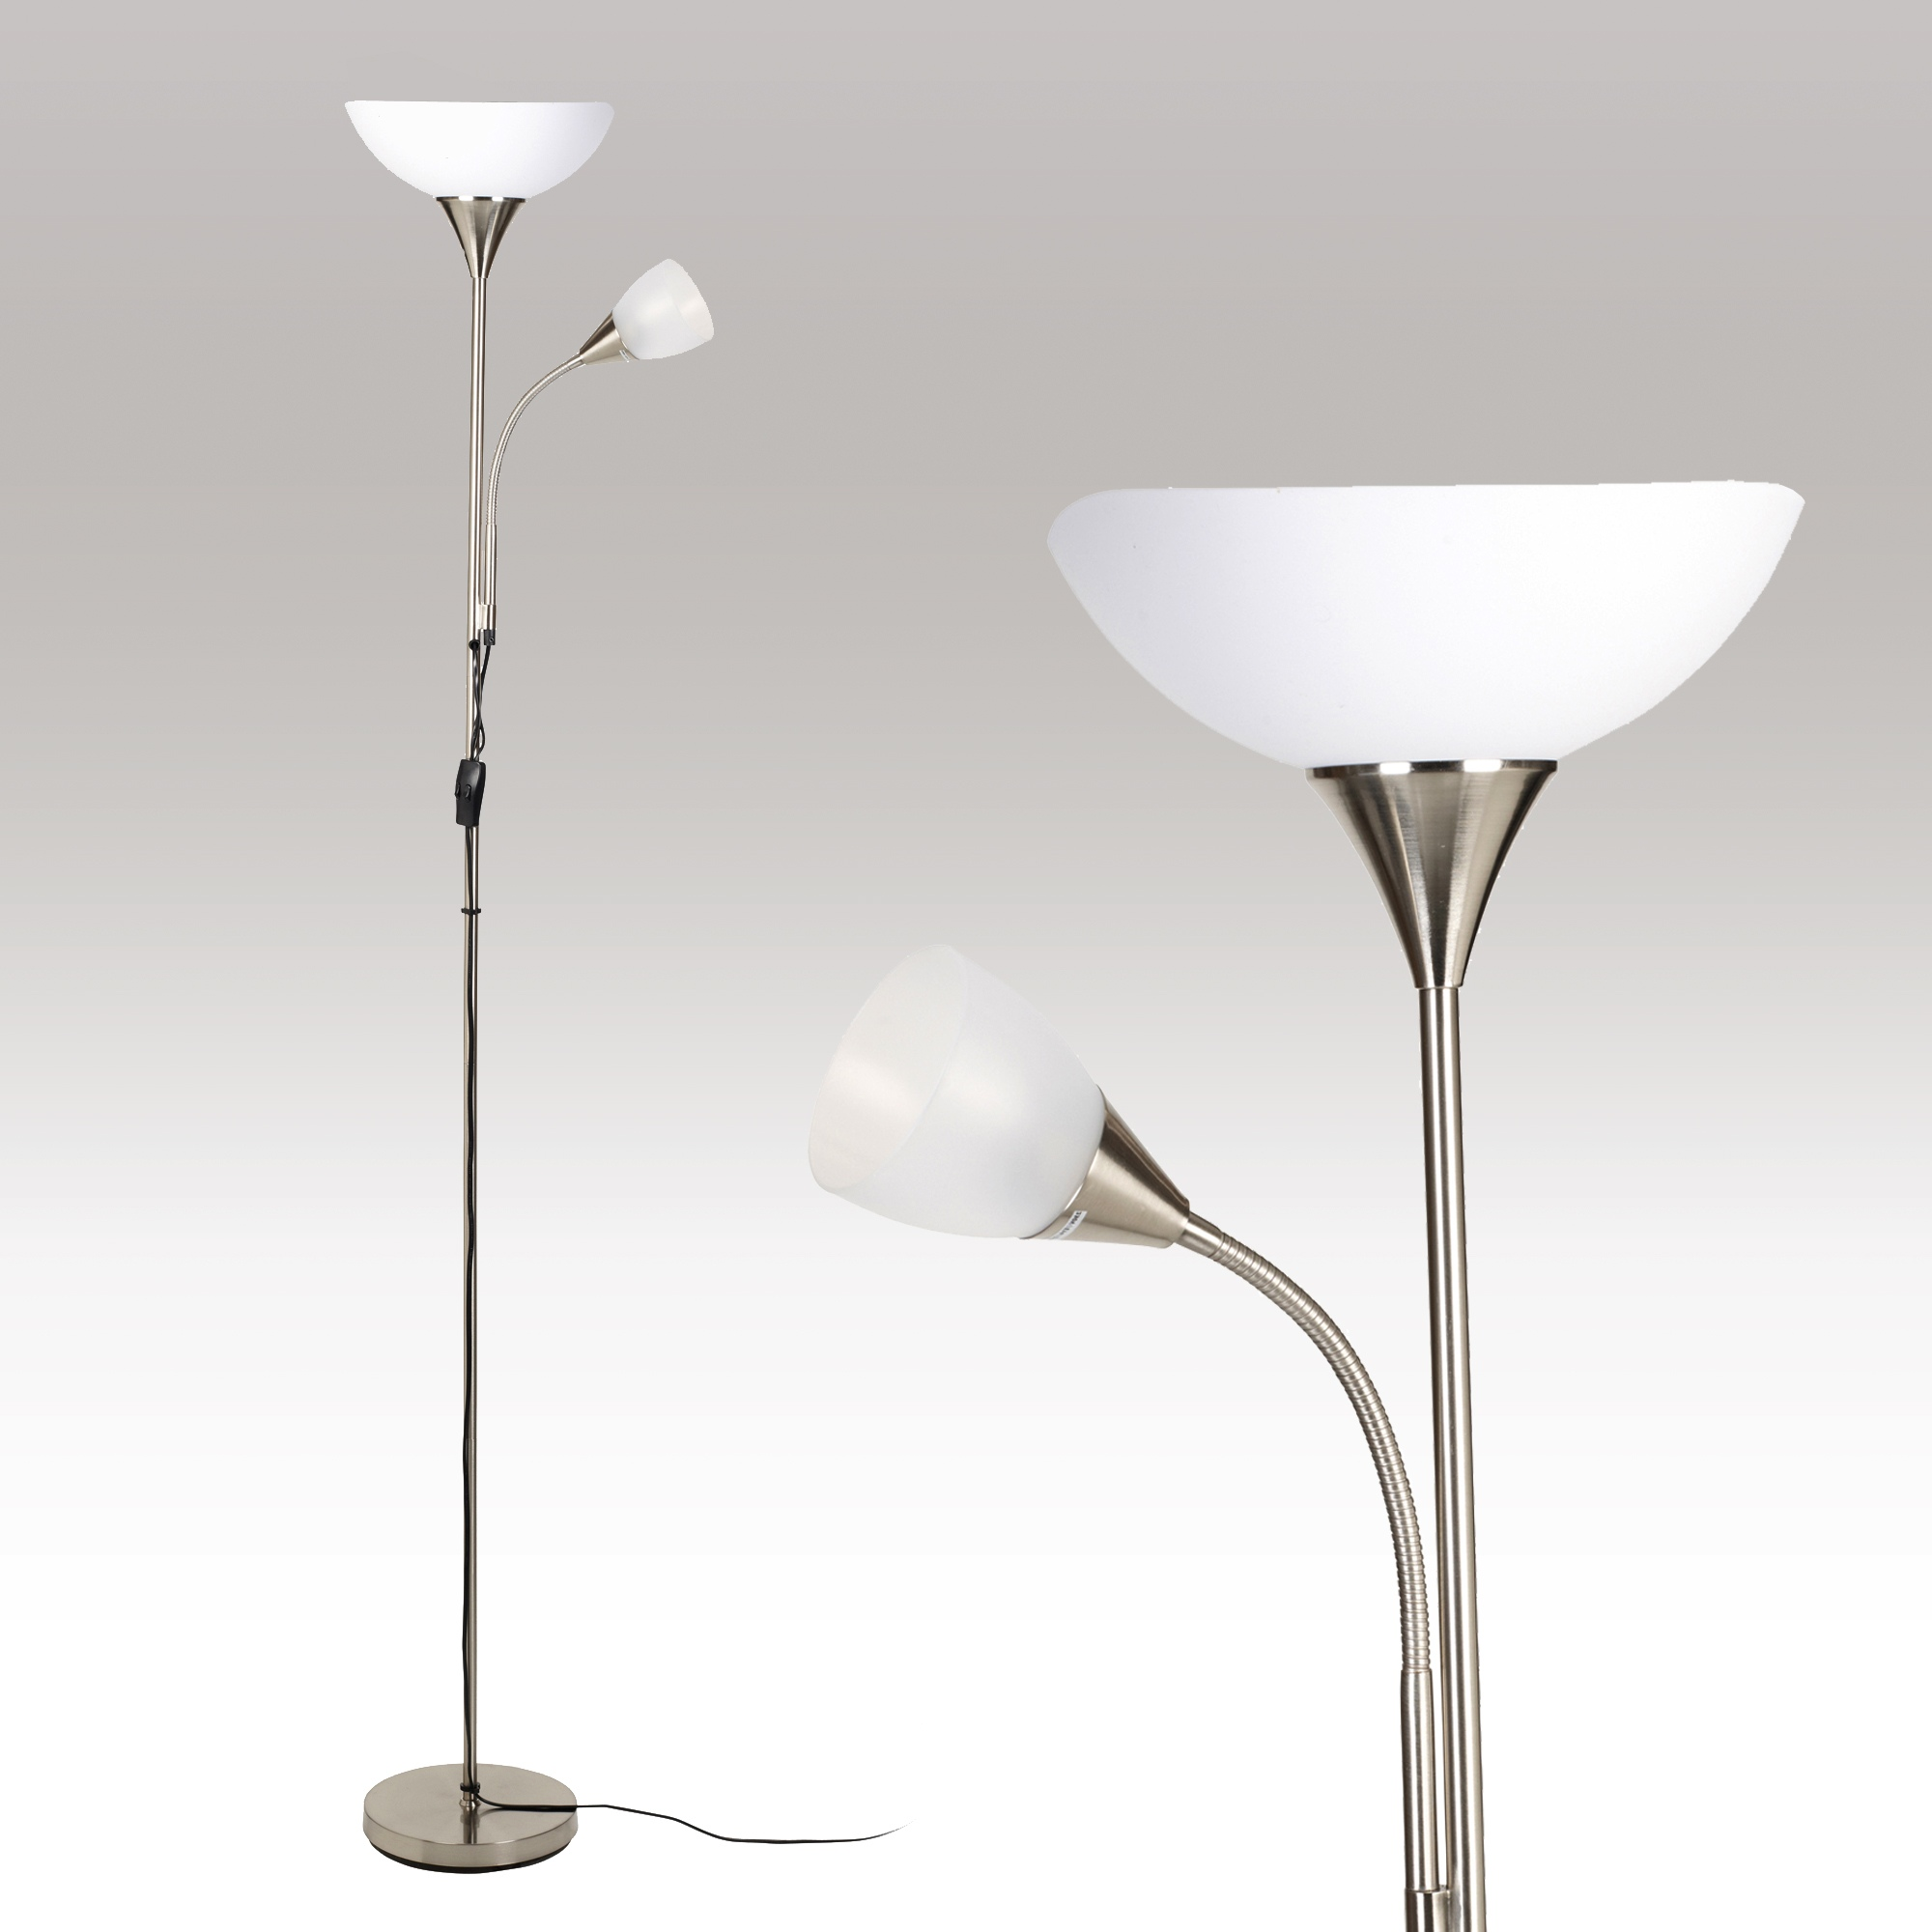 Double floor lamp standing uplighter reading light for Double floor lamp reading